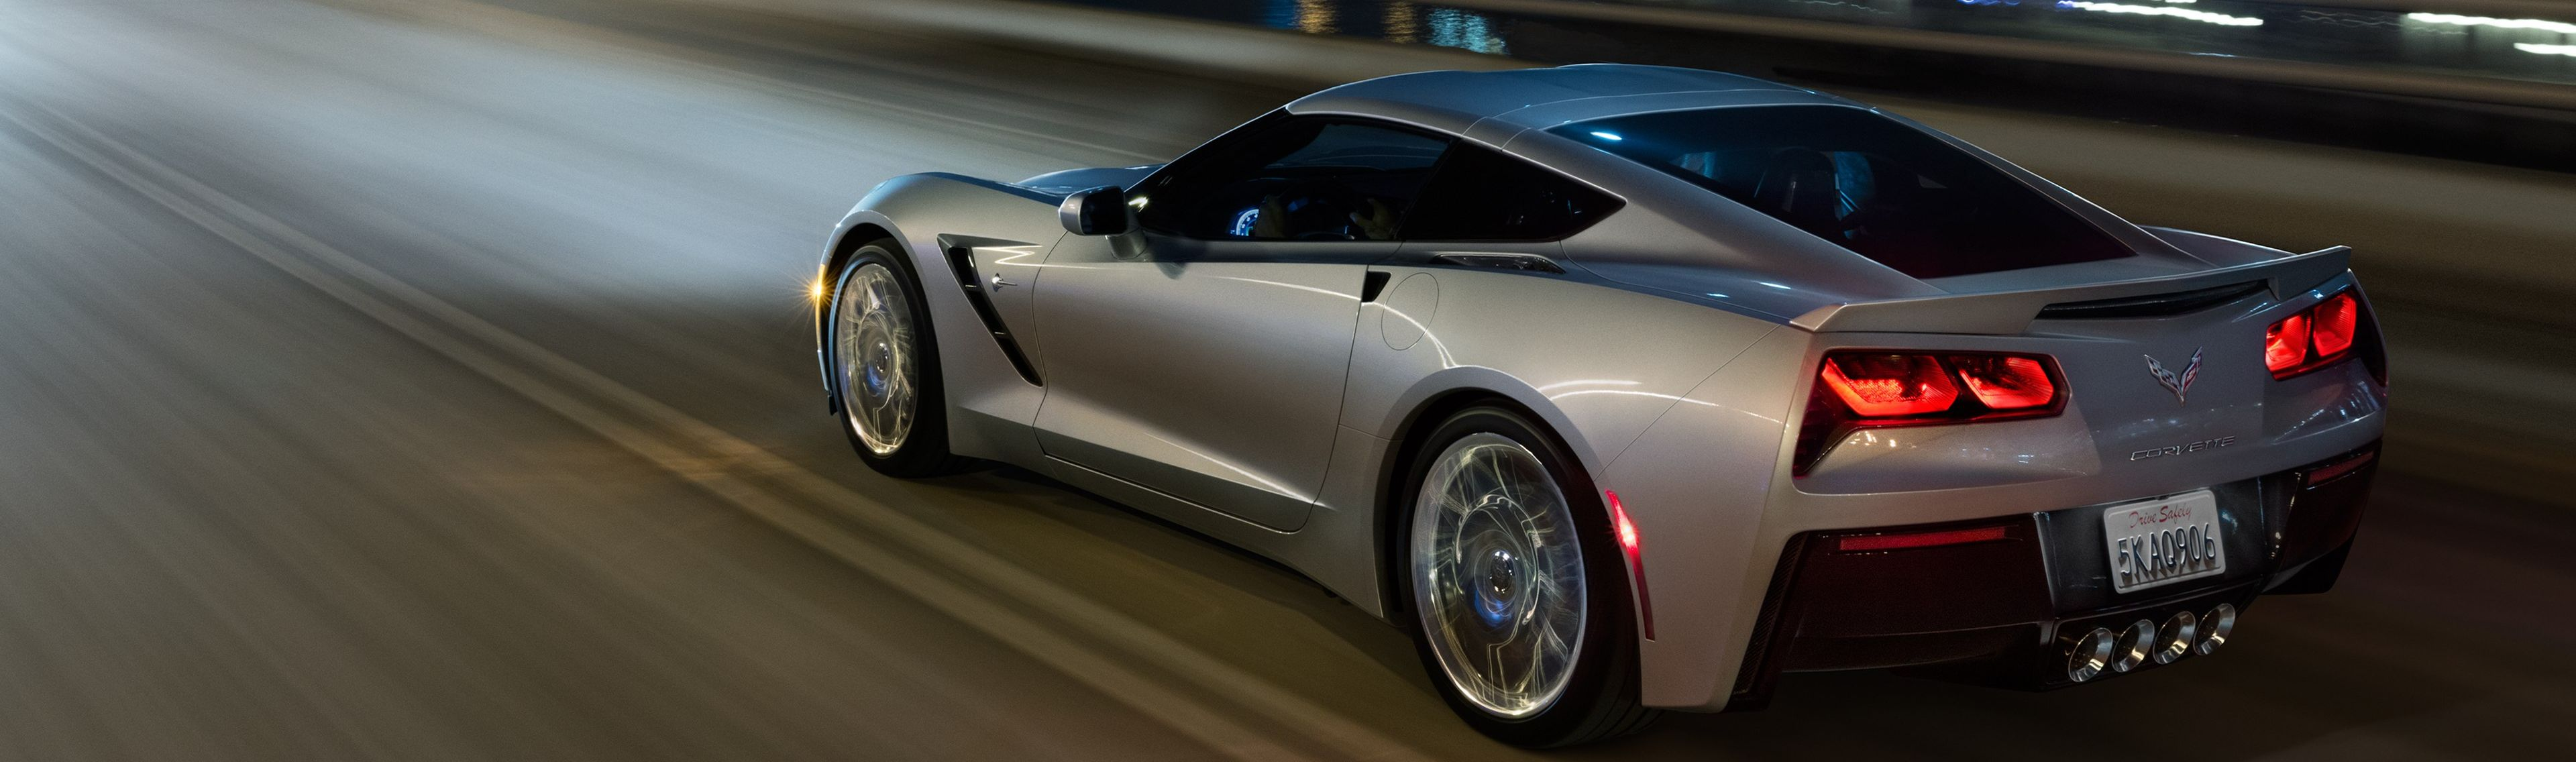 2019 Chevrolet Corvette for Sale near Merrillville, IN